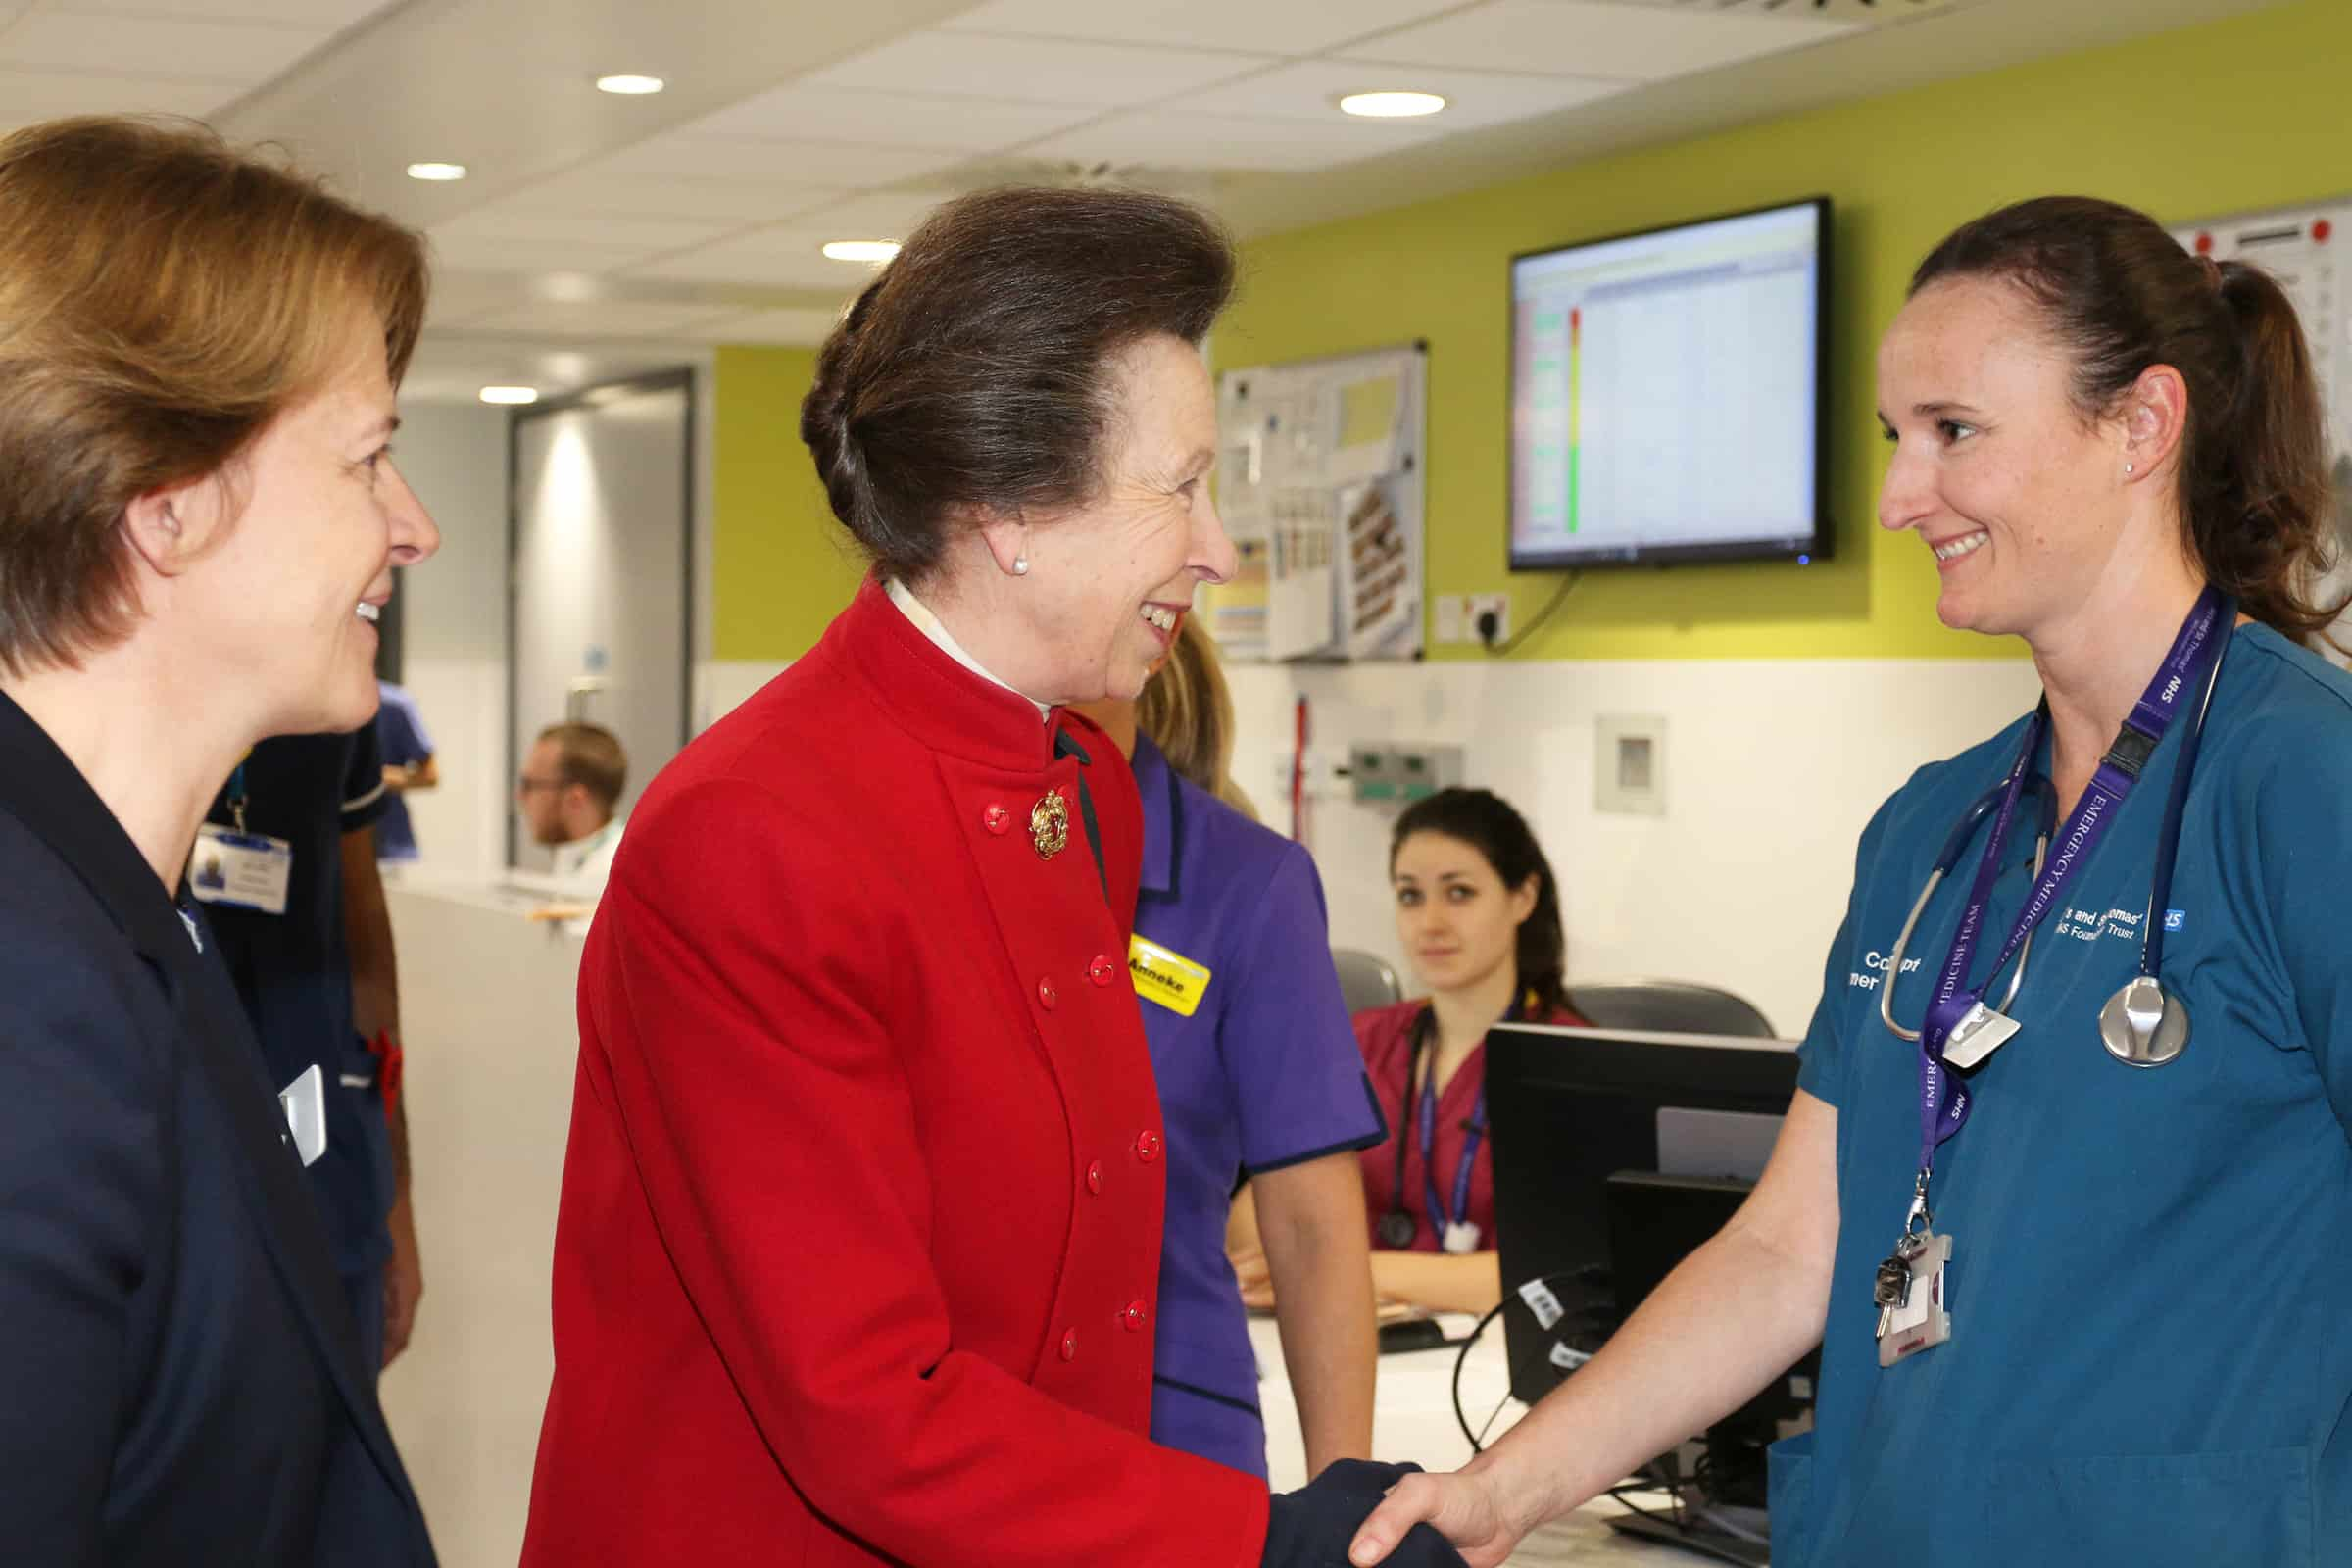 Princess Anne opens new emergency department at St Thomas